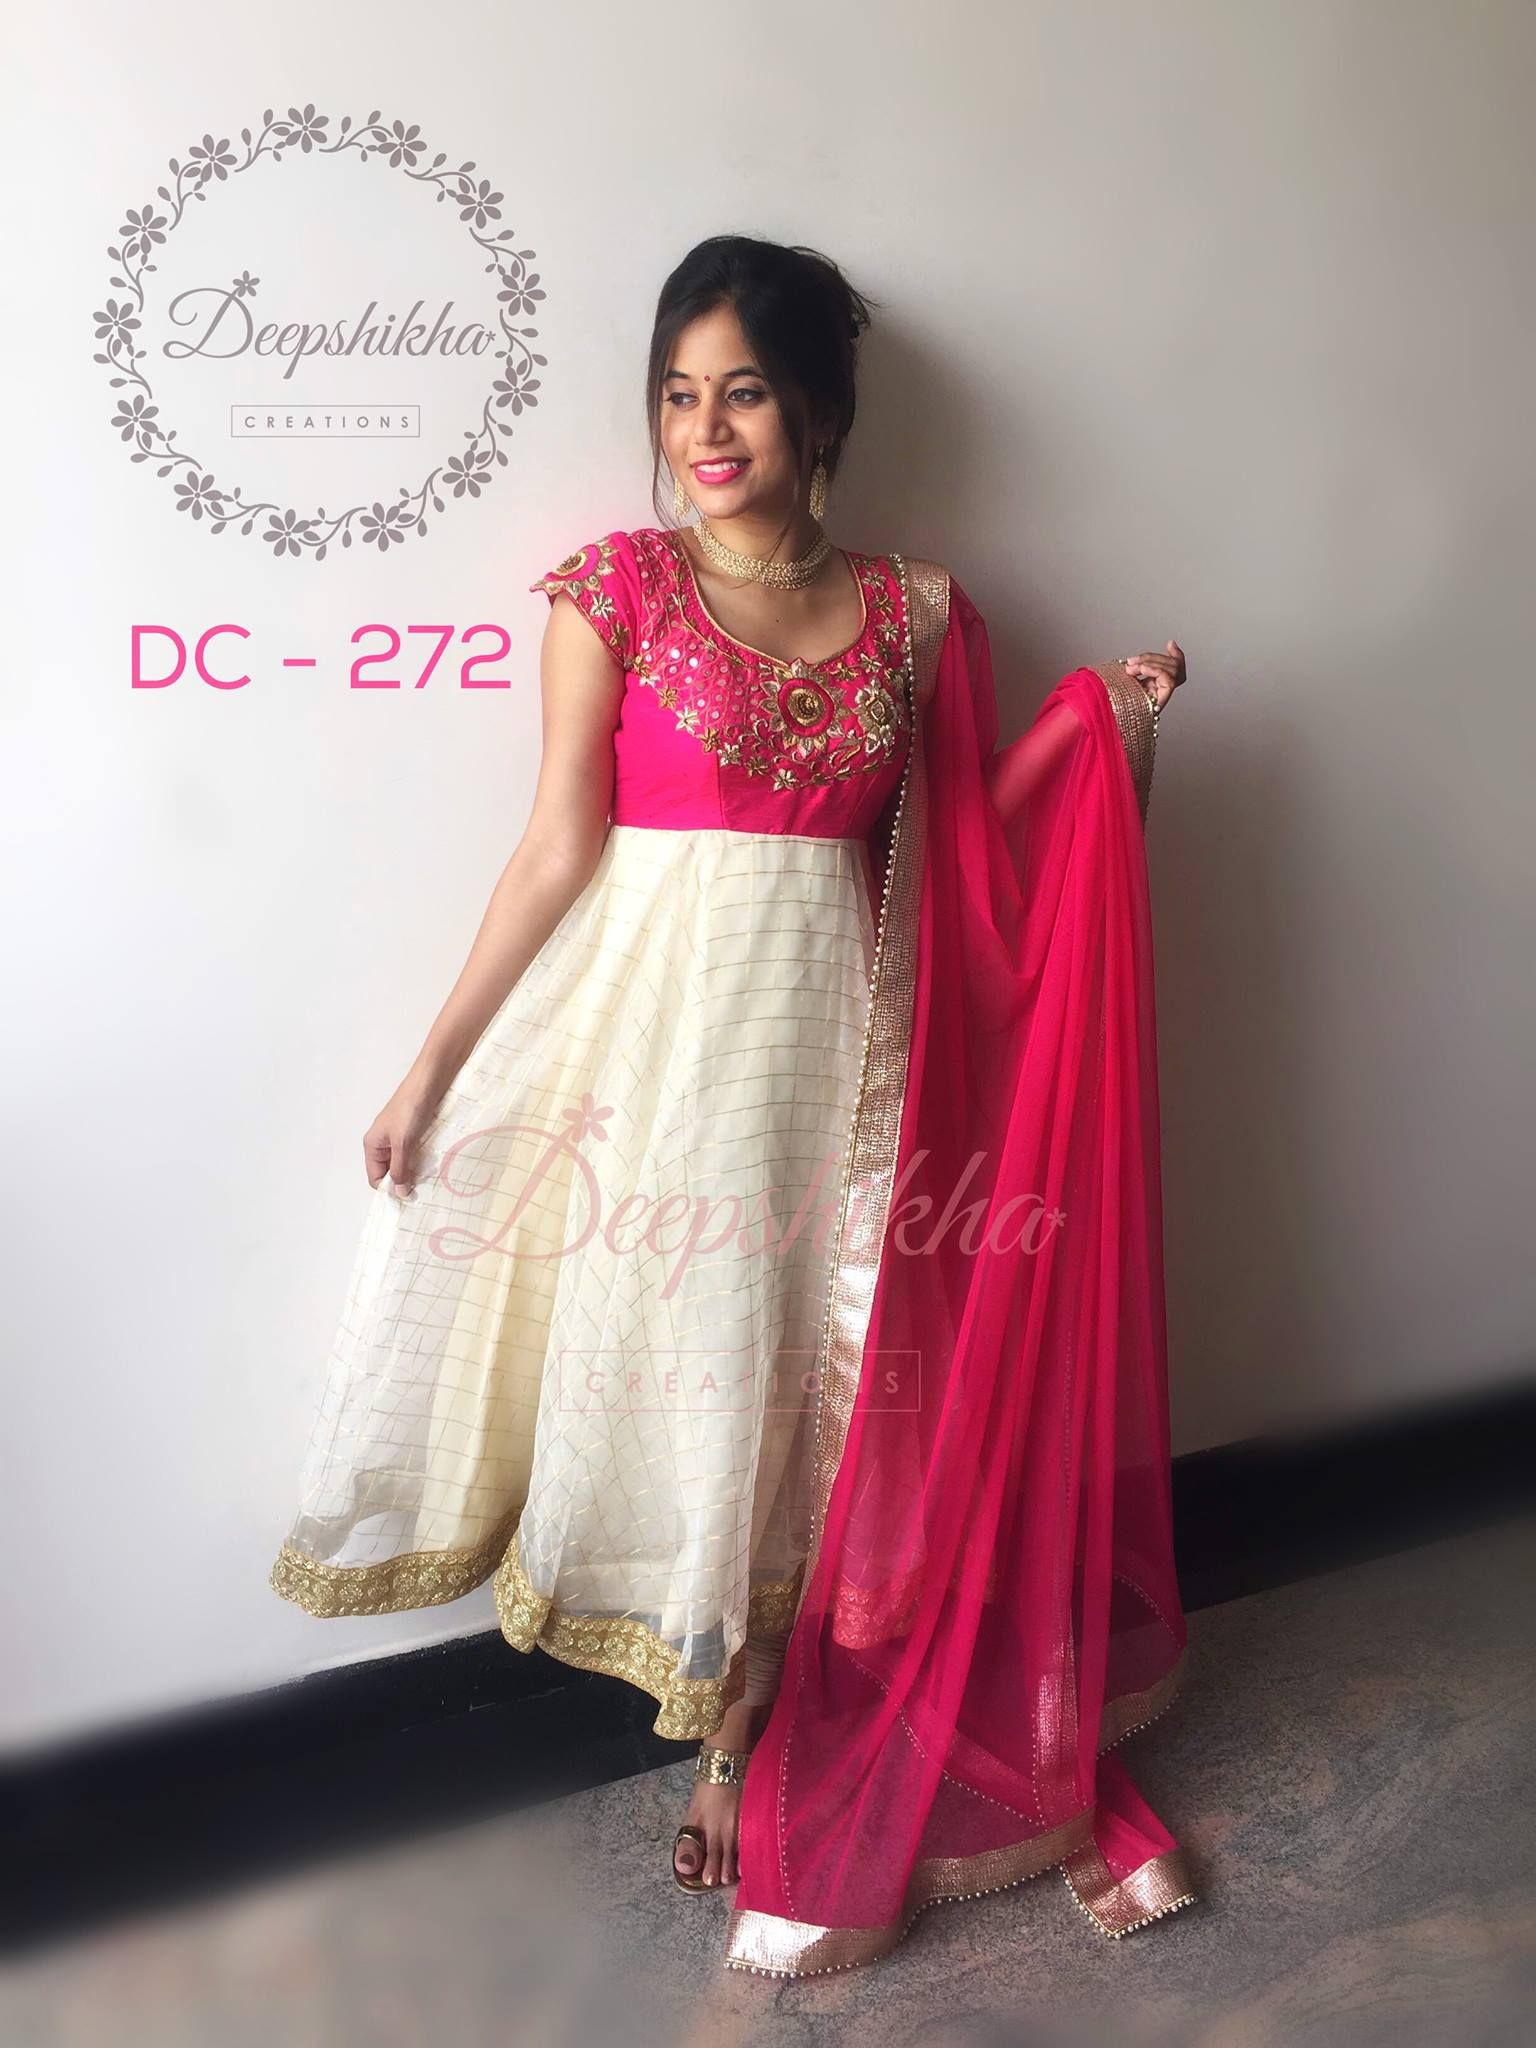 Dc for queries kindly inbox or email deepshikhacreations